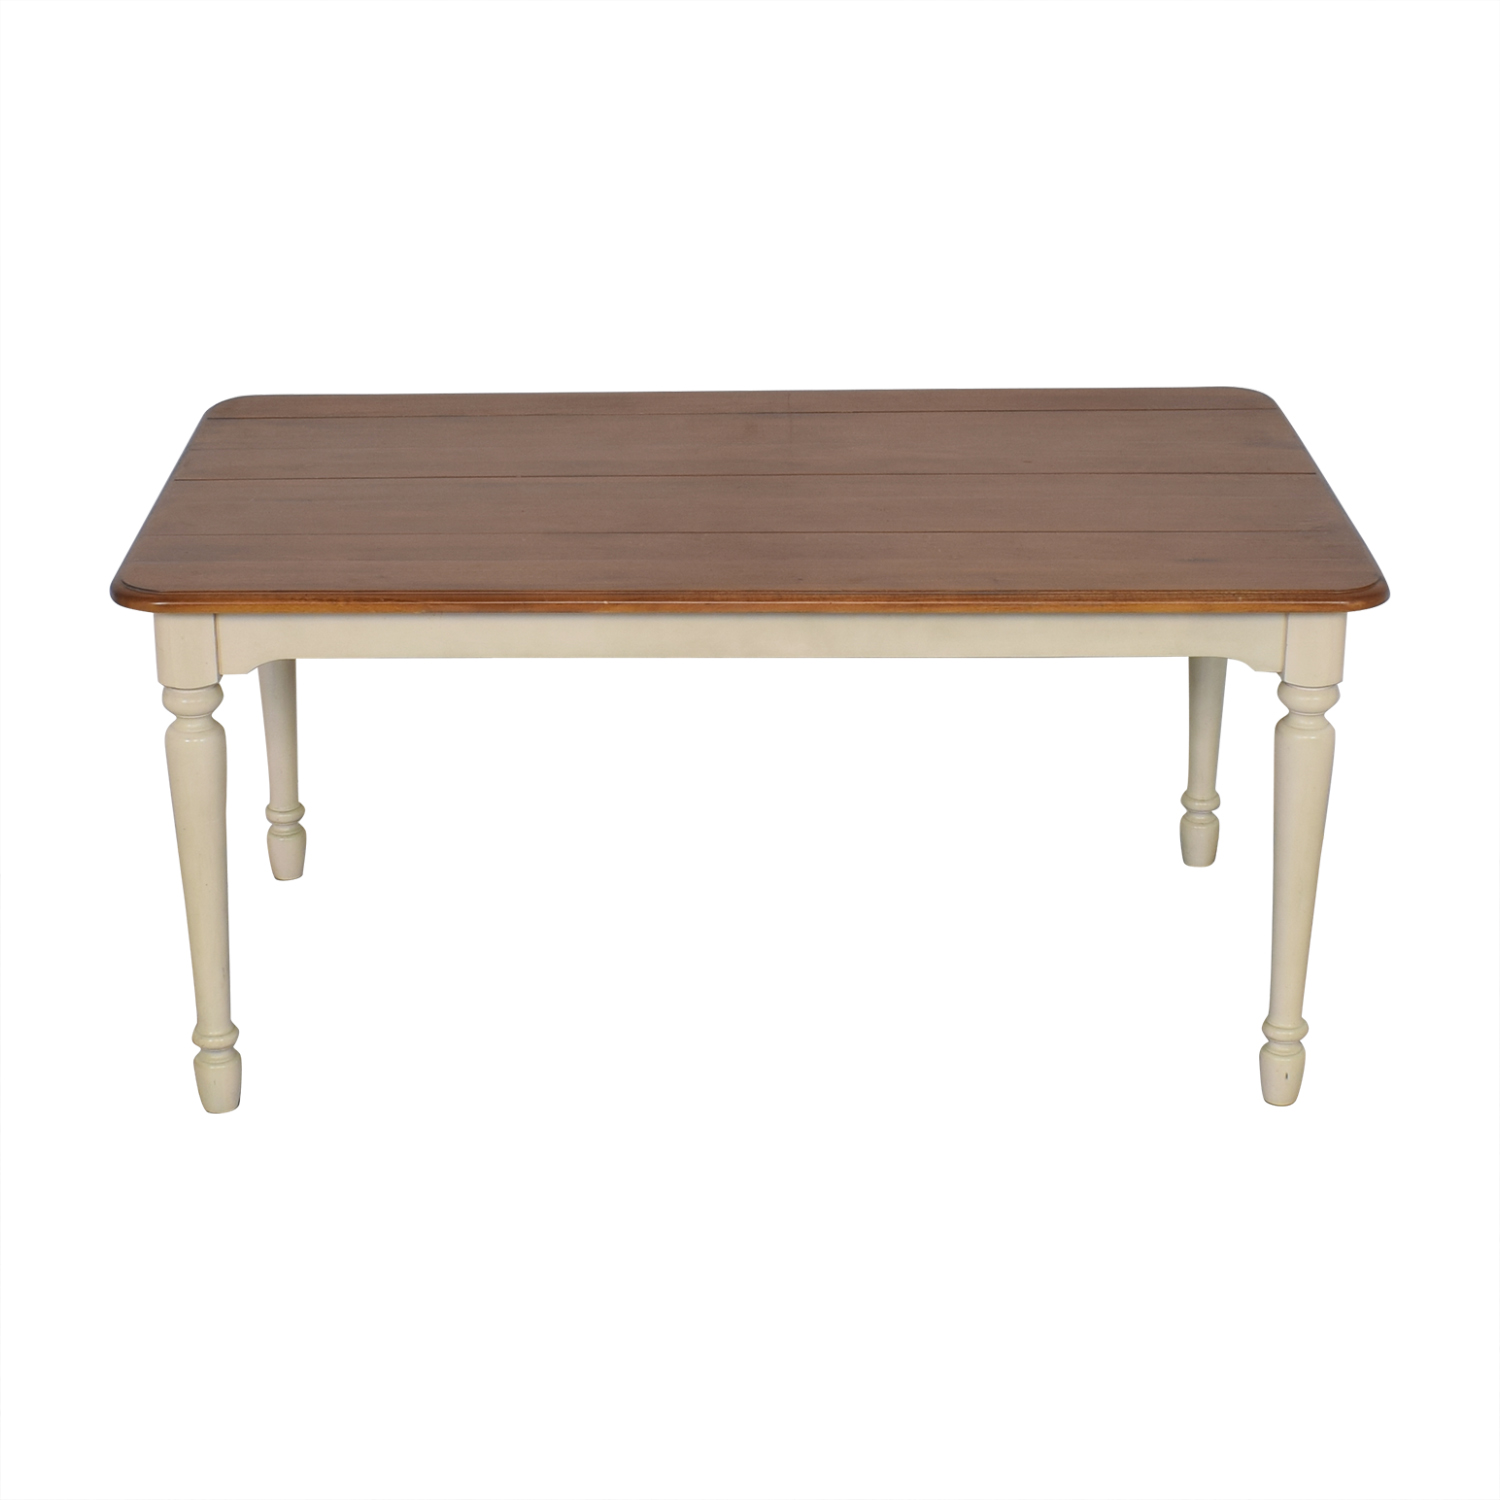 Cresent Furniture Cresent Fine Furniture Farmhouse Style Dining Table second hand